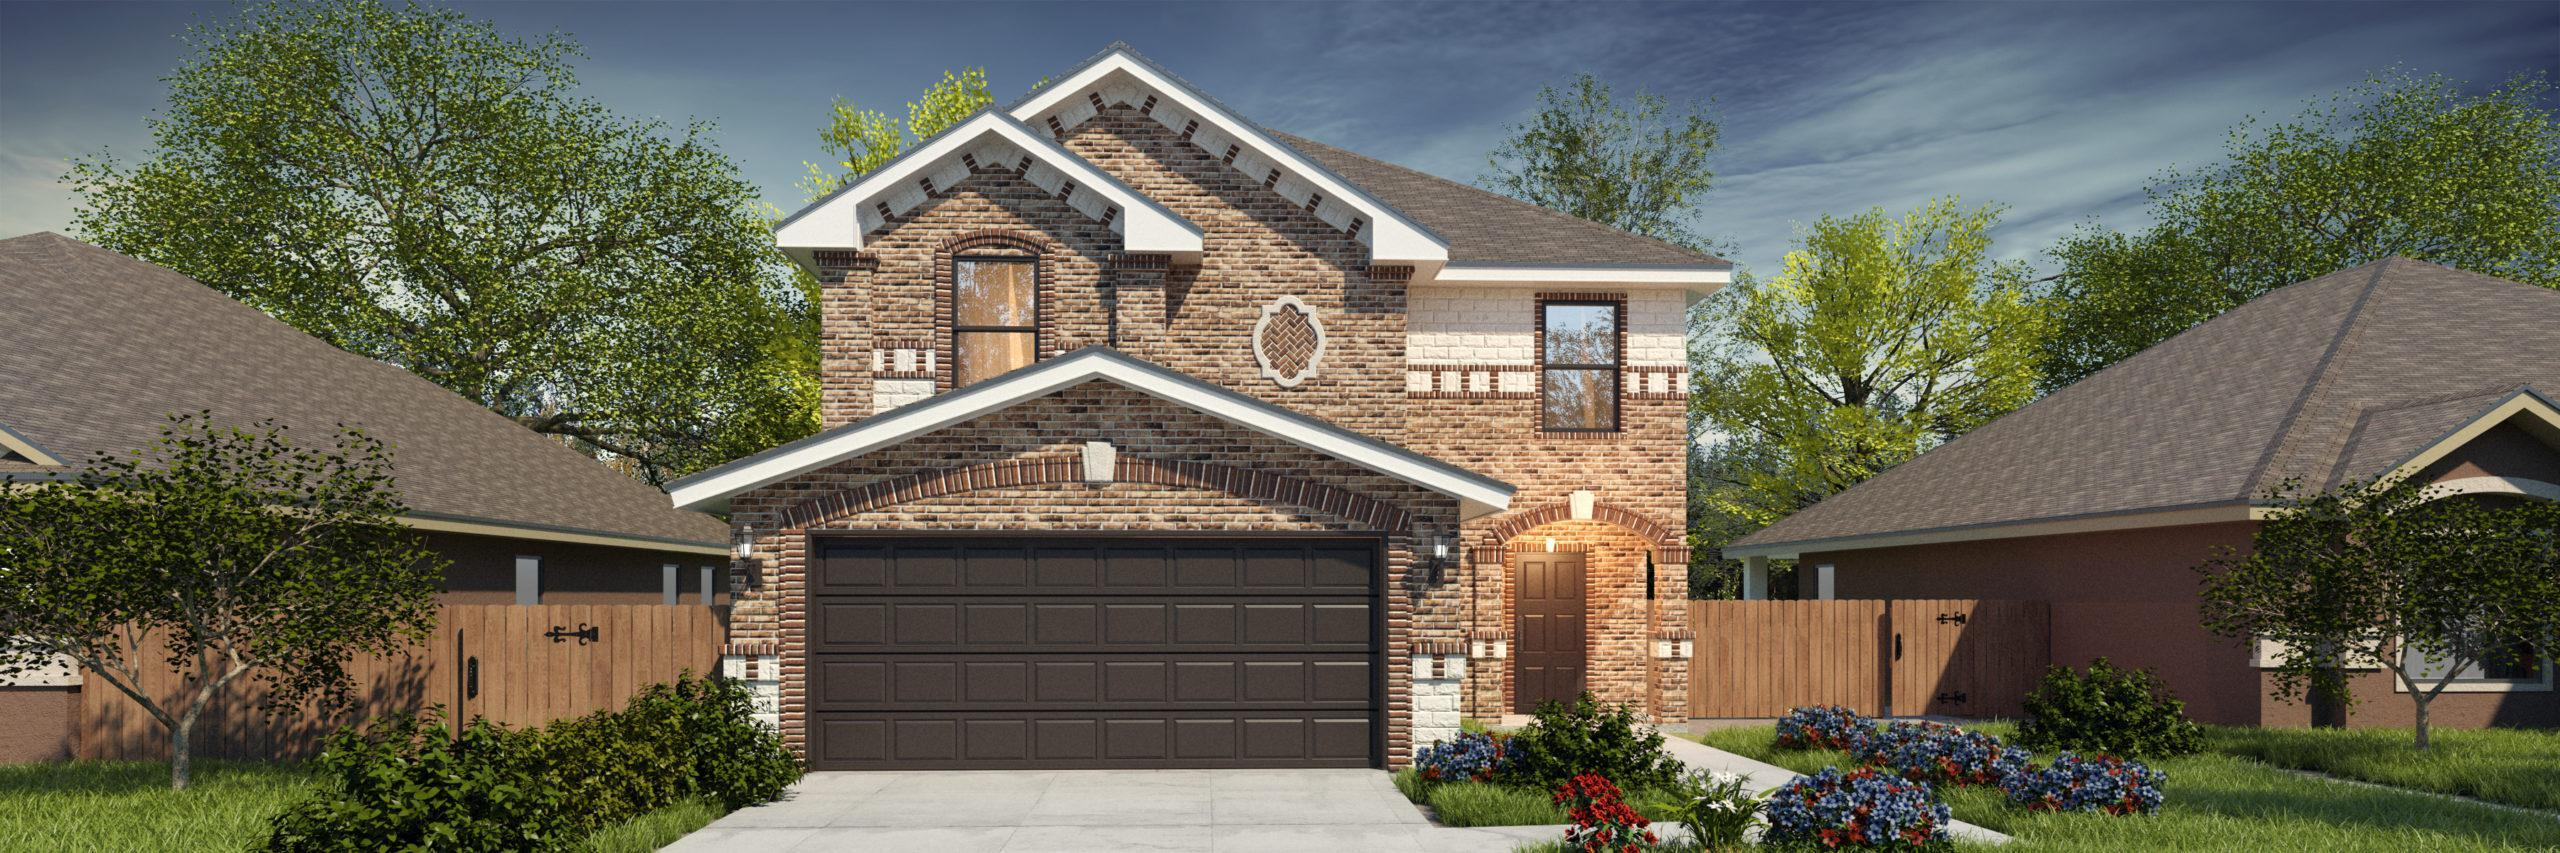 Exterior featured in the San Gabriel II By WestWind Homes in Rio Grande Valley, TX